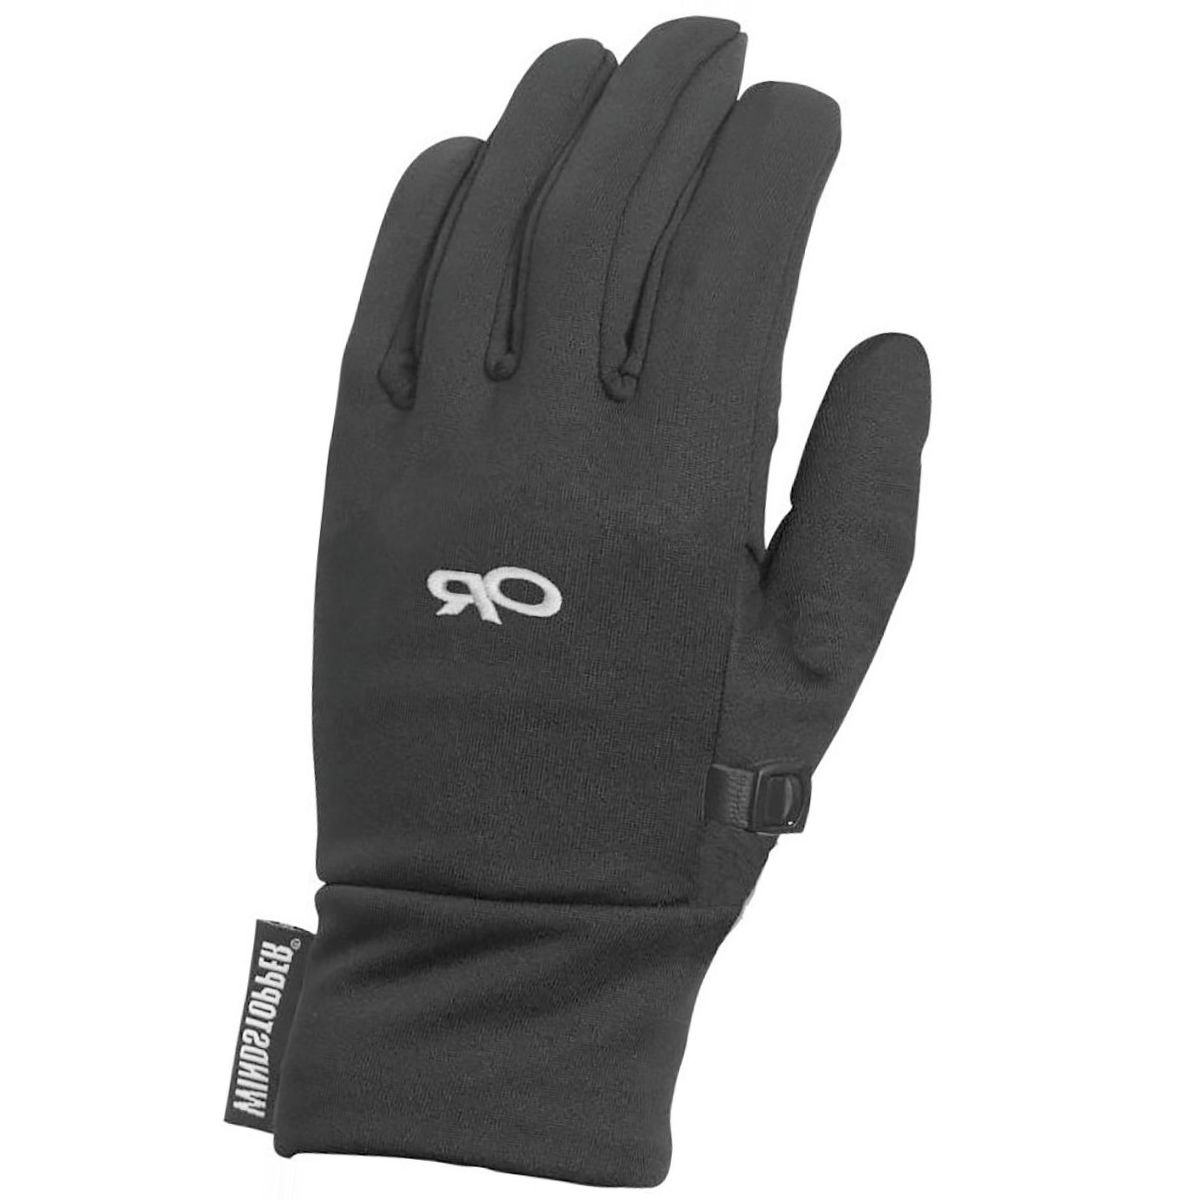 Outdoor Research Backstop Sensor Glove - Men's